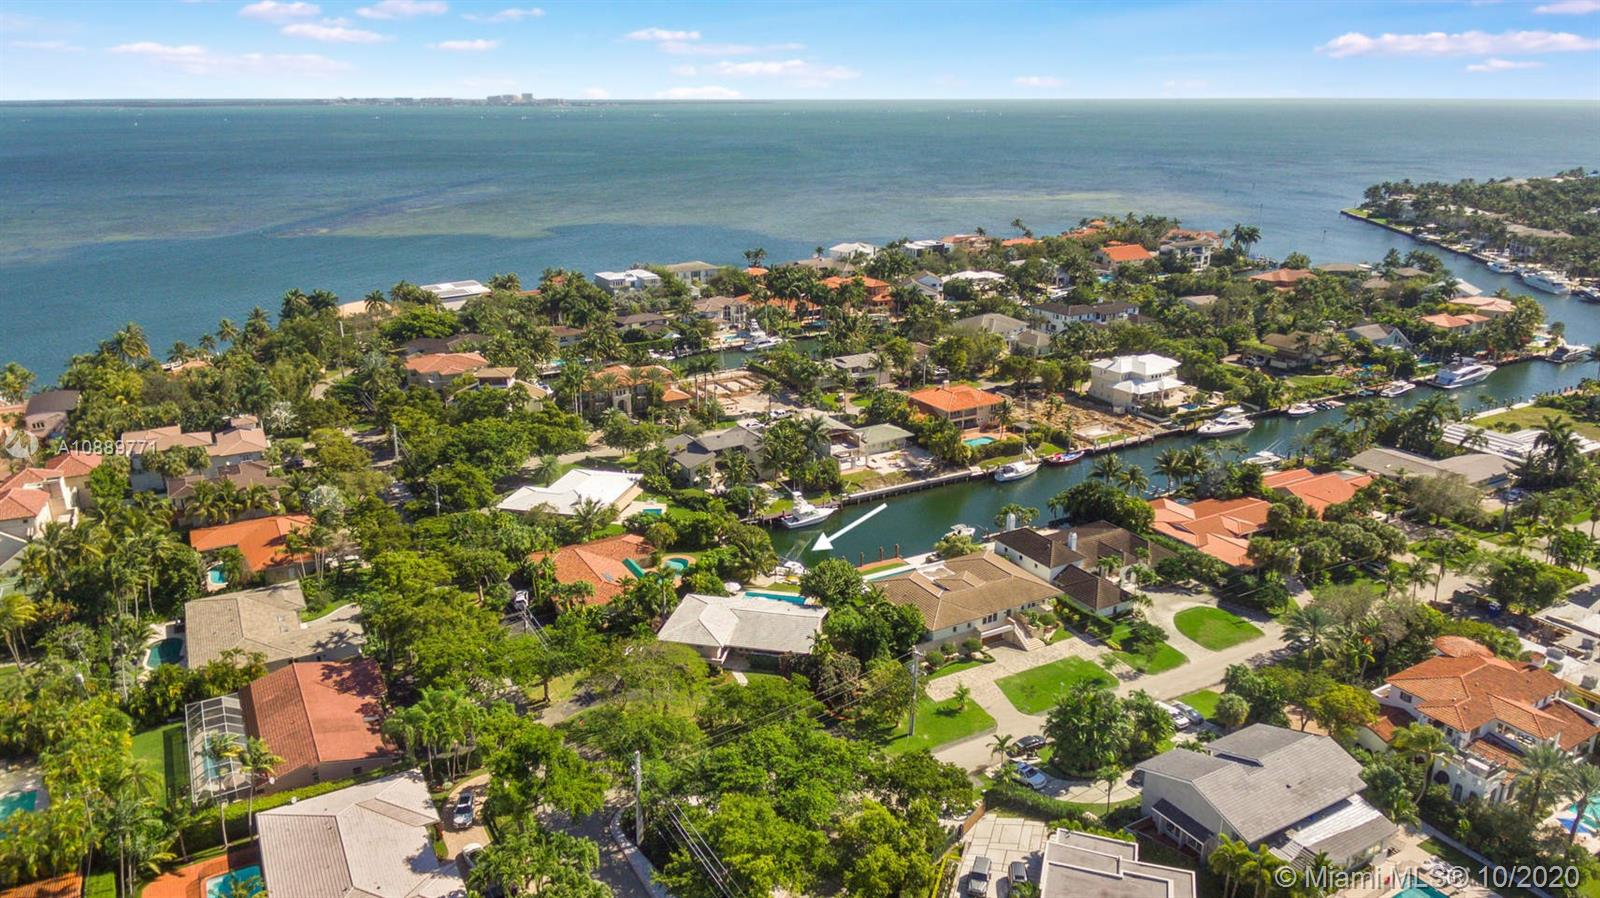 110 E Sunrise Ave, Coral Gables, Florida 33133, 3 Bedrooms Bedrooms, ,3 BathroomsBathrooms,Residential,For Sale,110 E Sunrise Ave,A10889771